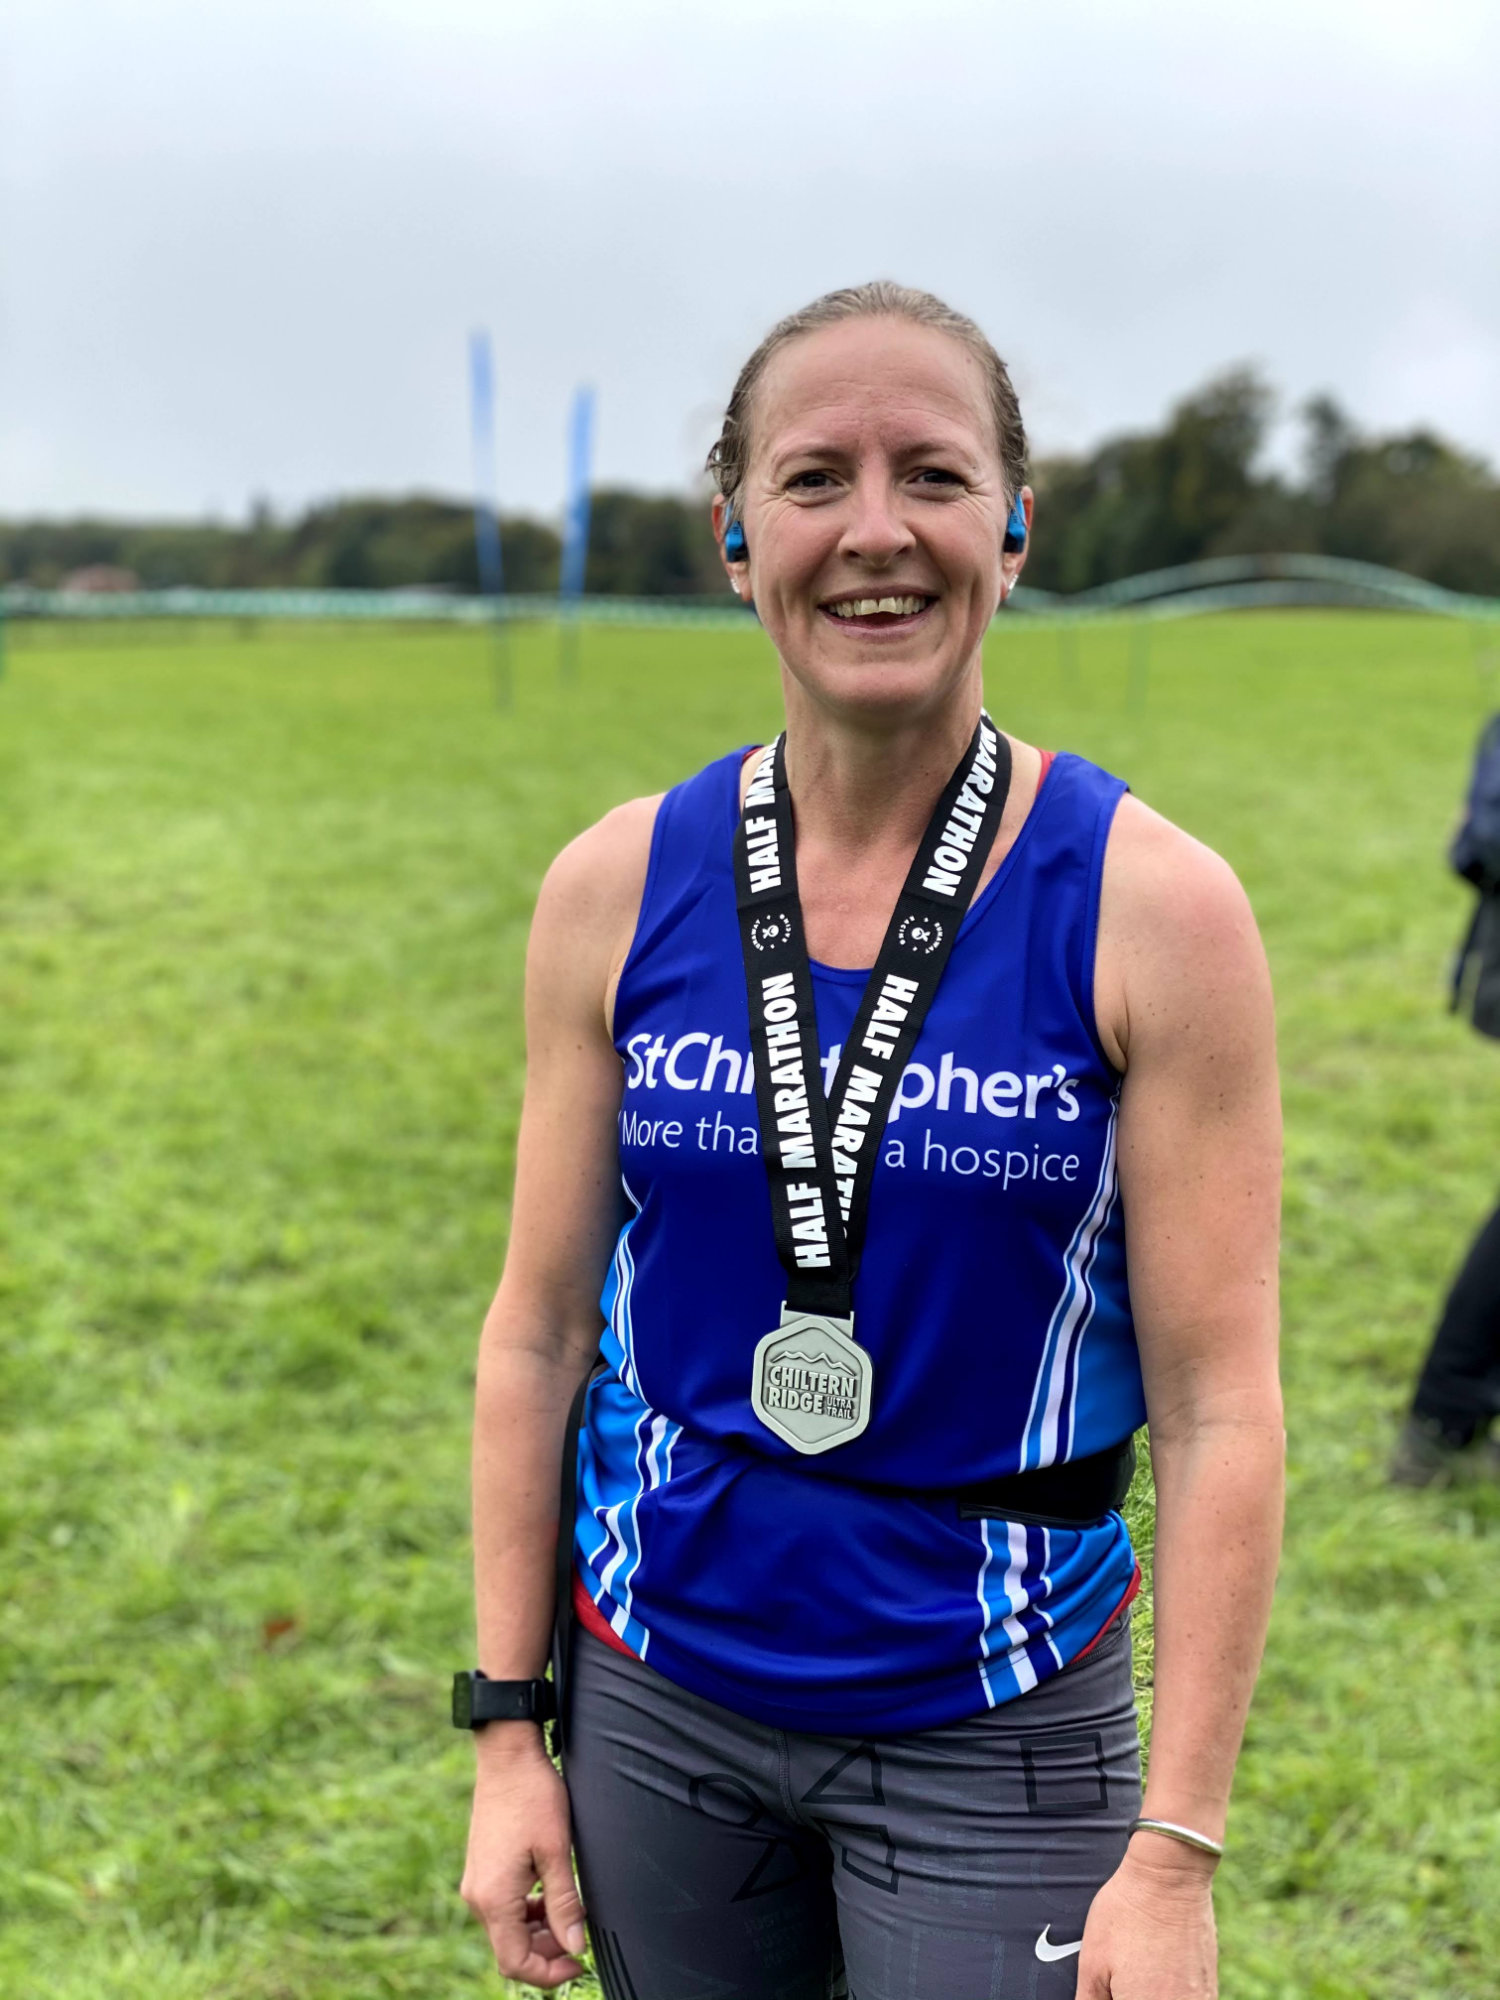 Fundraise your way RaceDay